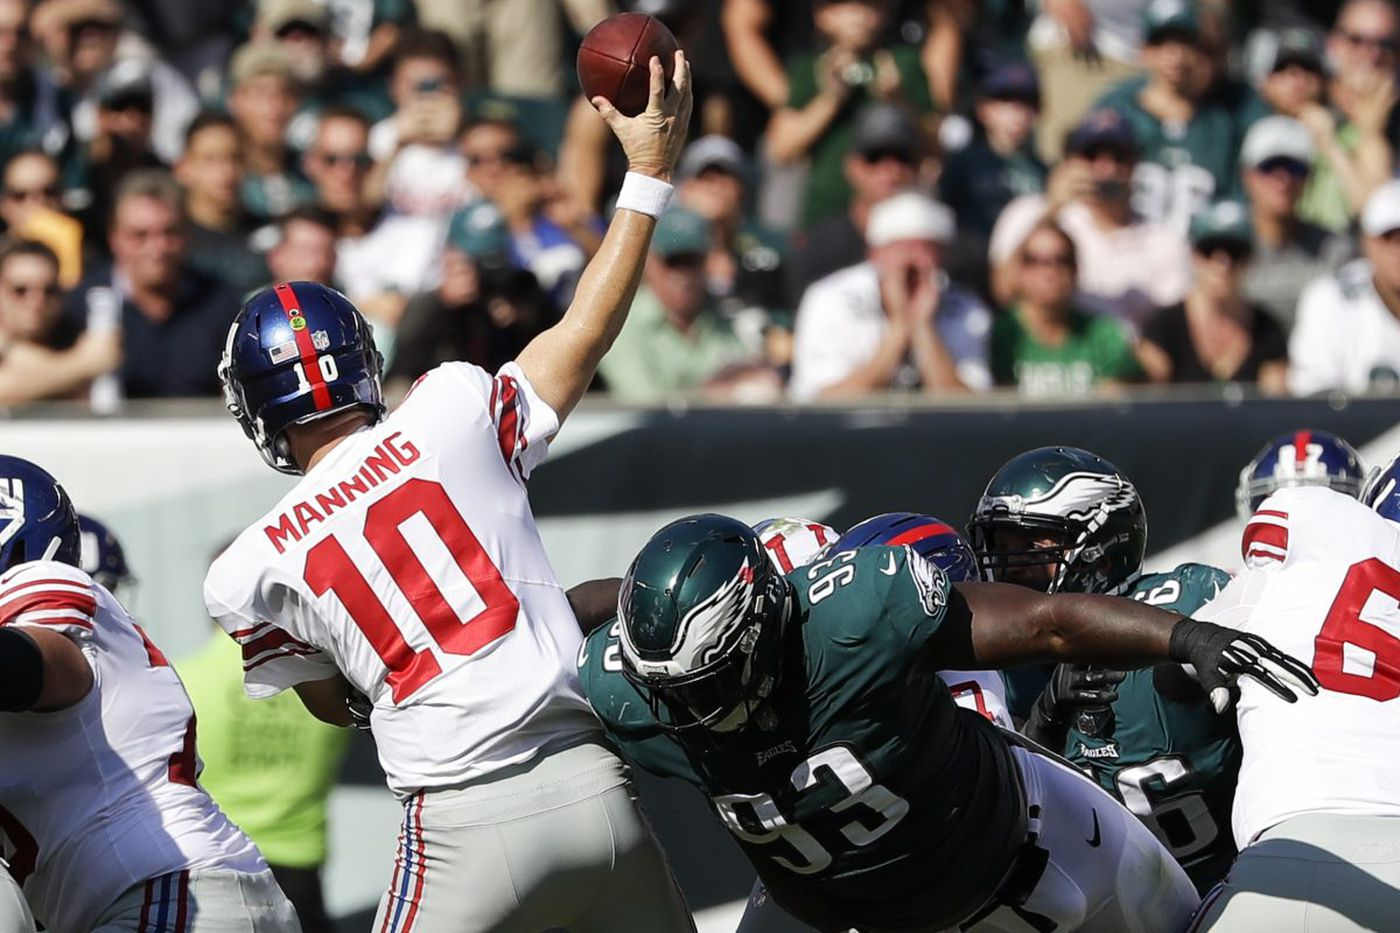 Eagles-Giants: TV announcers, referee info, point spreads, etc.